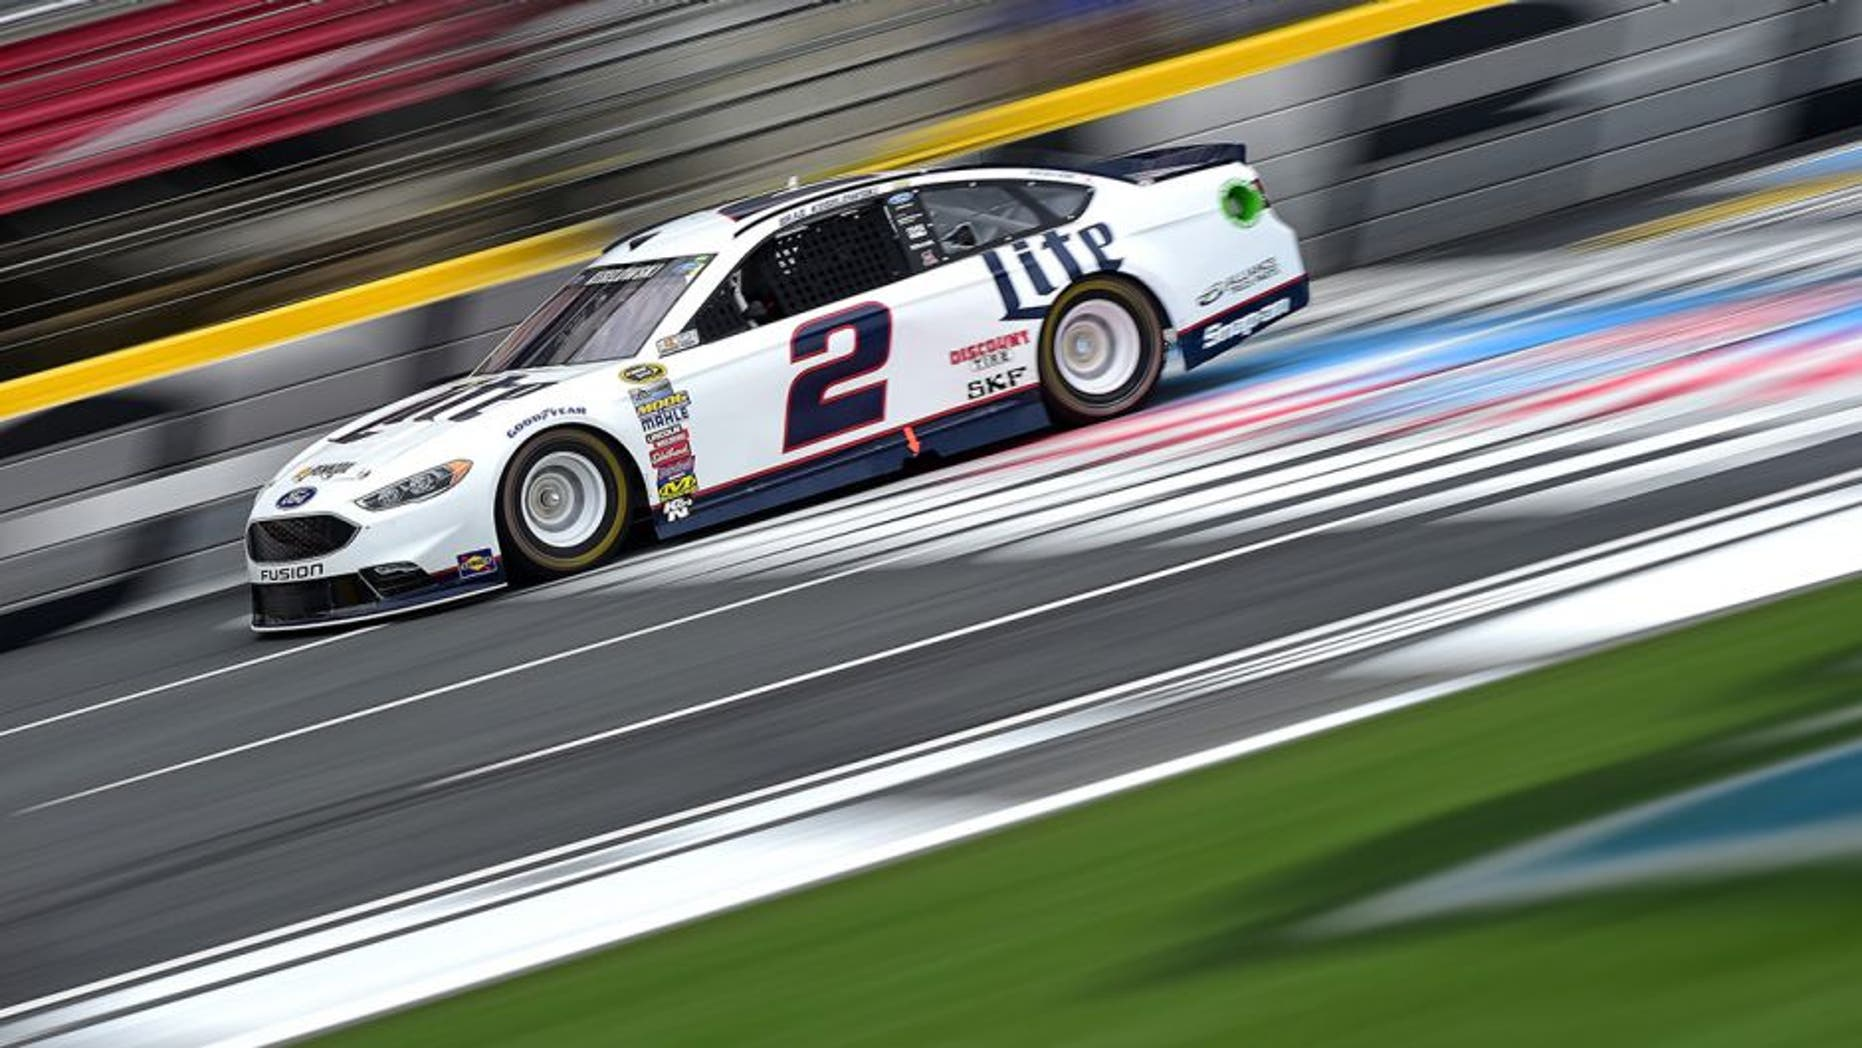 CHARLOTTE, NC - MAY 21: Brad Keselowski, driver of the #2 Miller Lite Ford, practices for the NASCAR Sprint Cup Series Sprint All-Star Race at Charlotte Motor Speedway on May 21, 2016 in Charlotte, North Carolina. (Photo by Jared C. Tilton/Getty Images)